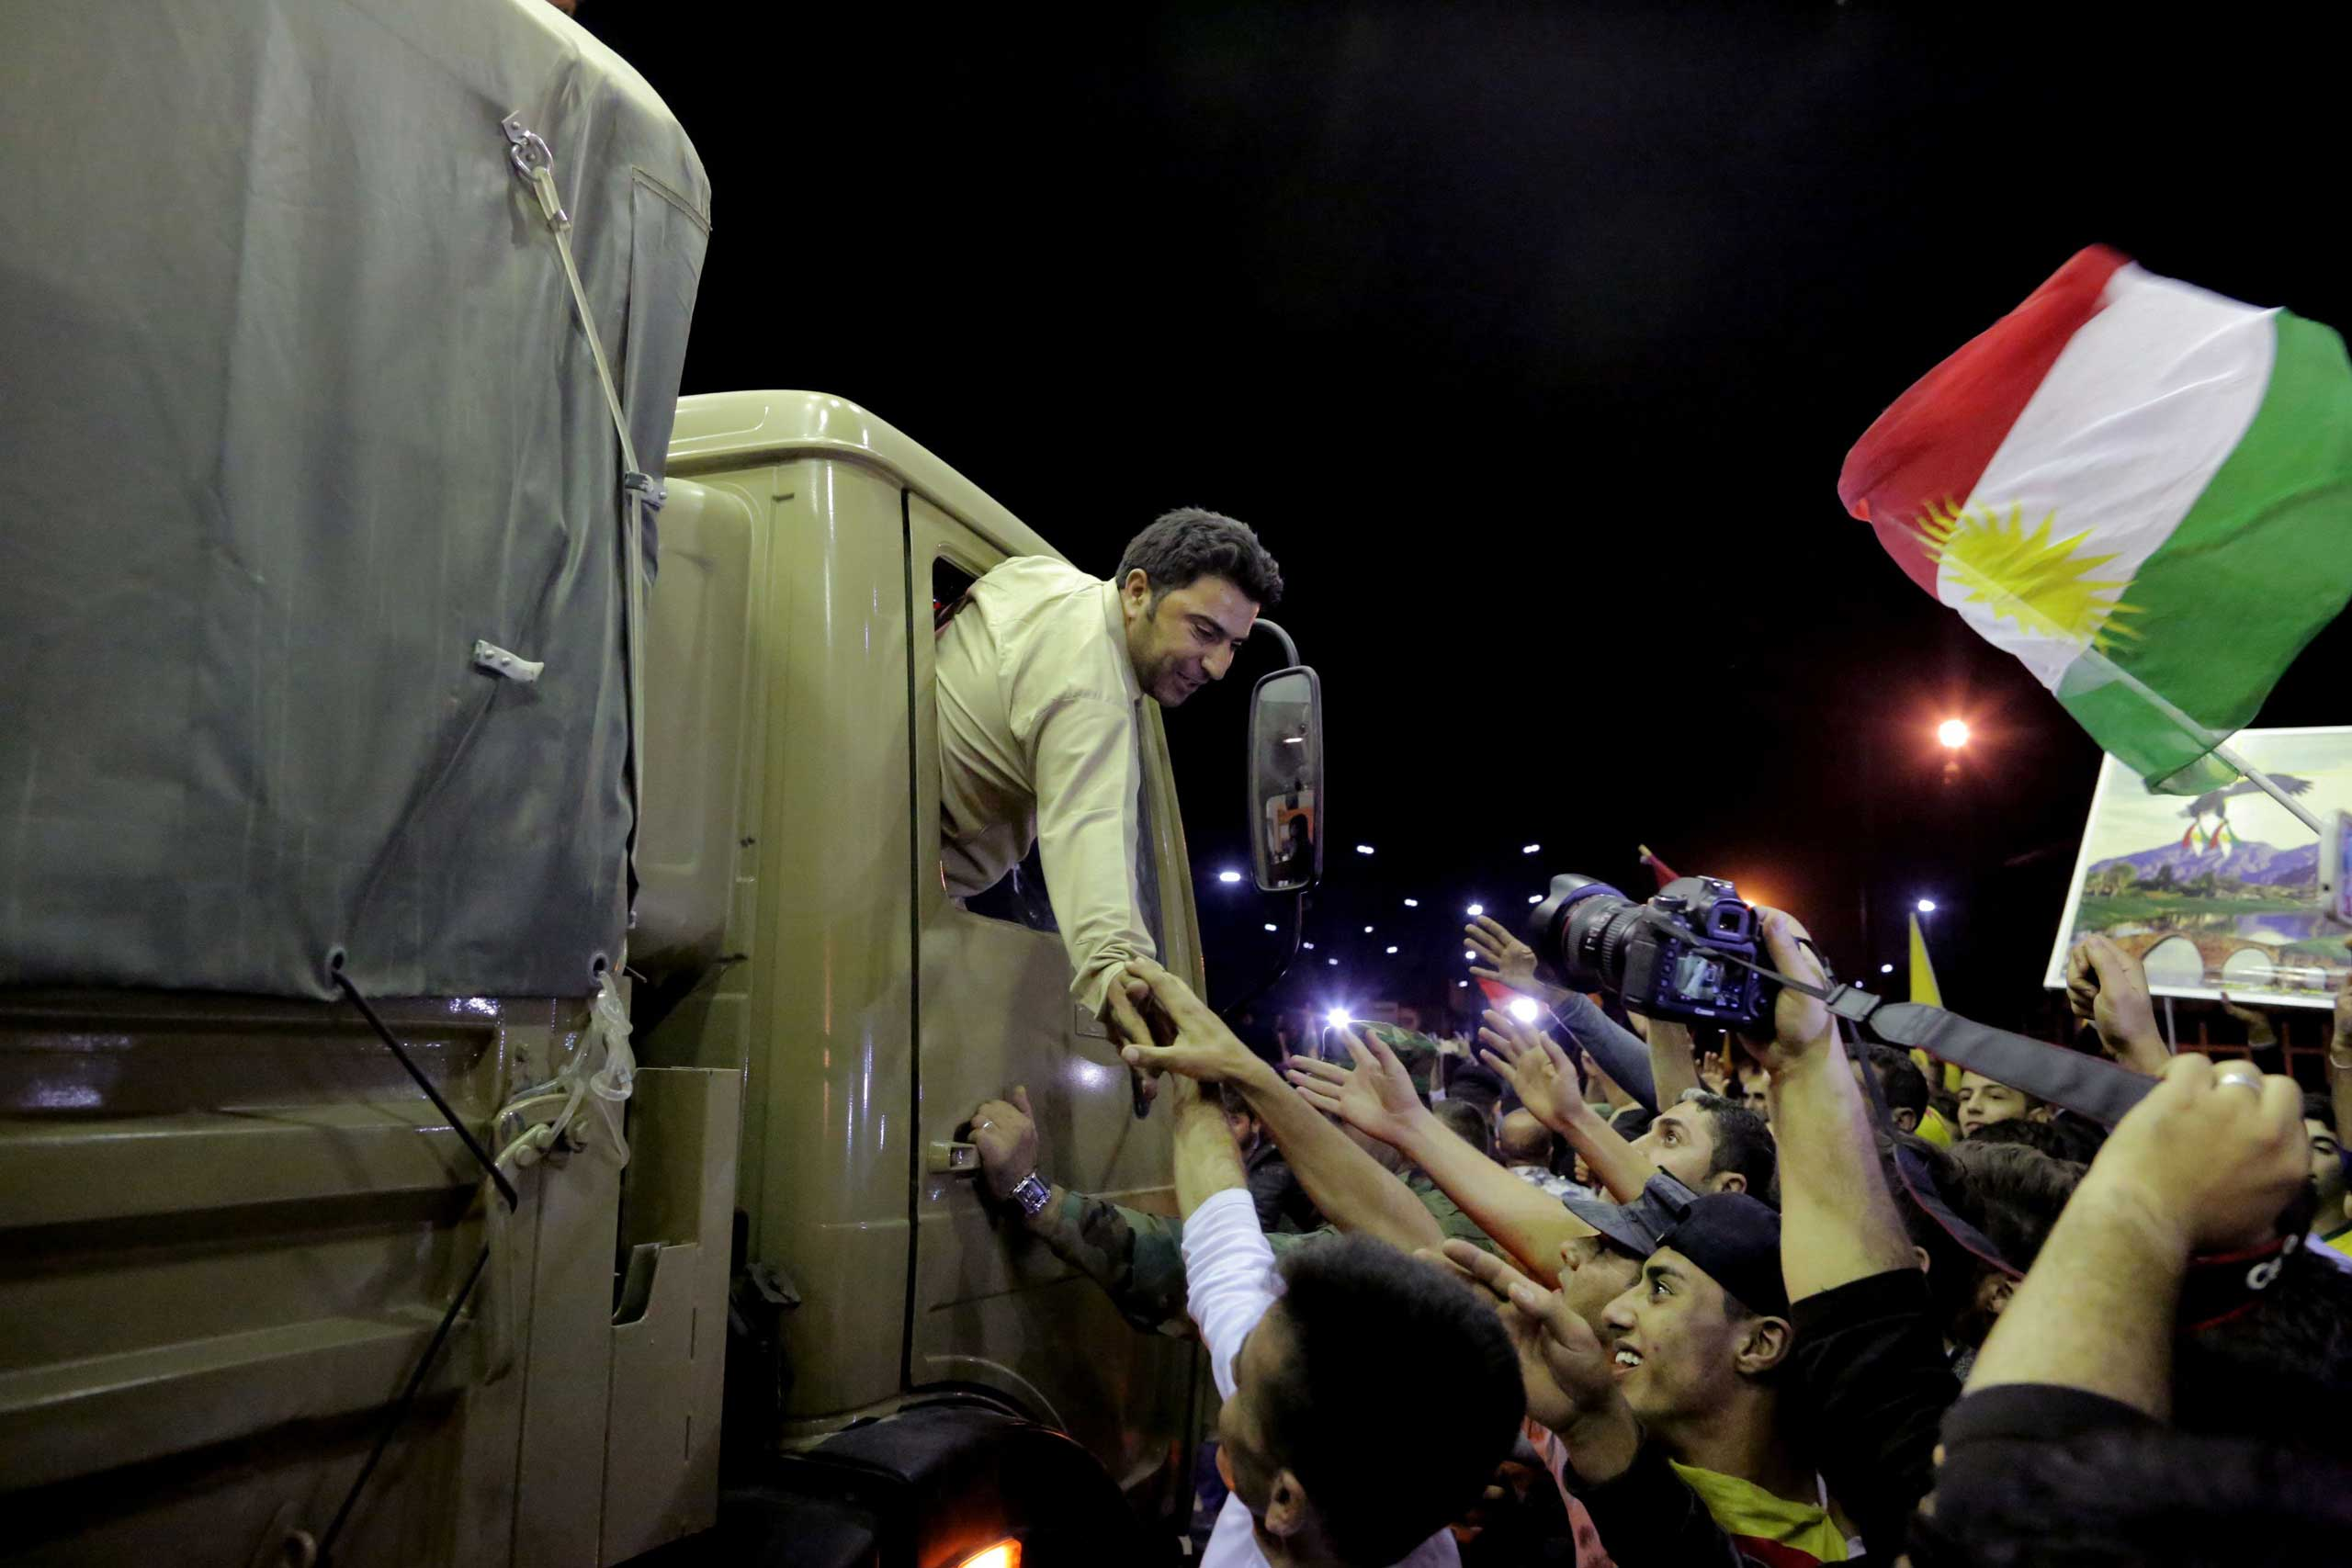 A Kurdish Peshmerga soldier reaches out his hand to supporters, at the Ibrahim Khalil border crossing, in the Northern Kurdish Region of Iraq,  Oct. 29, 2014.